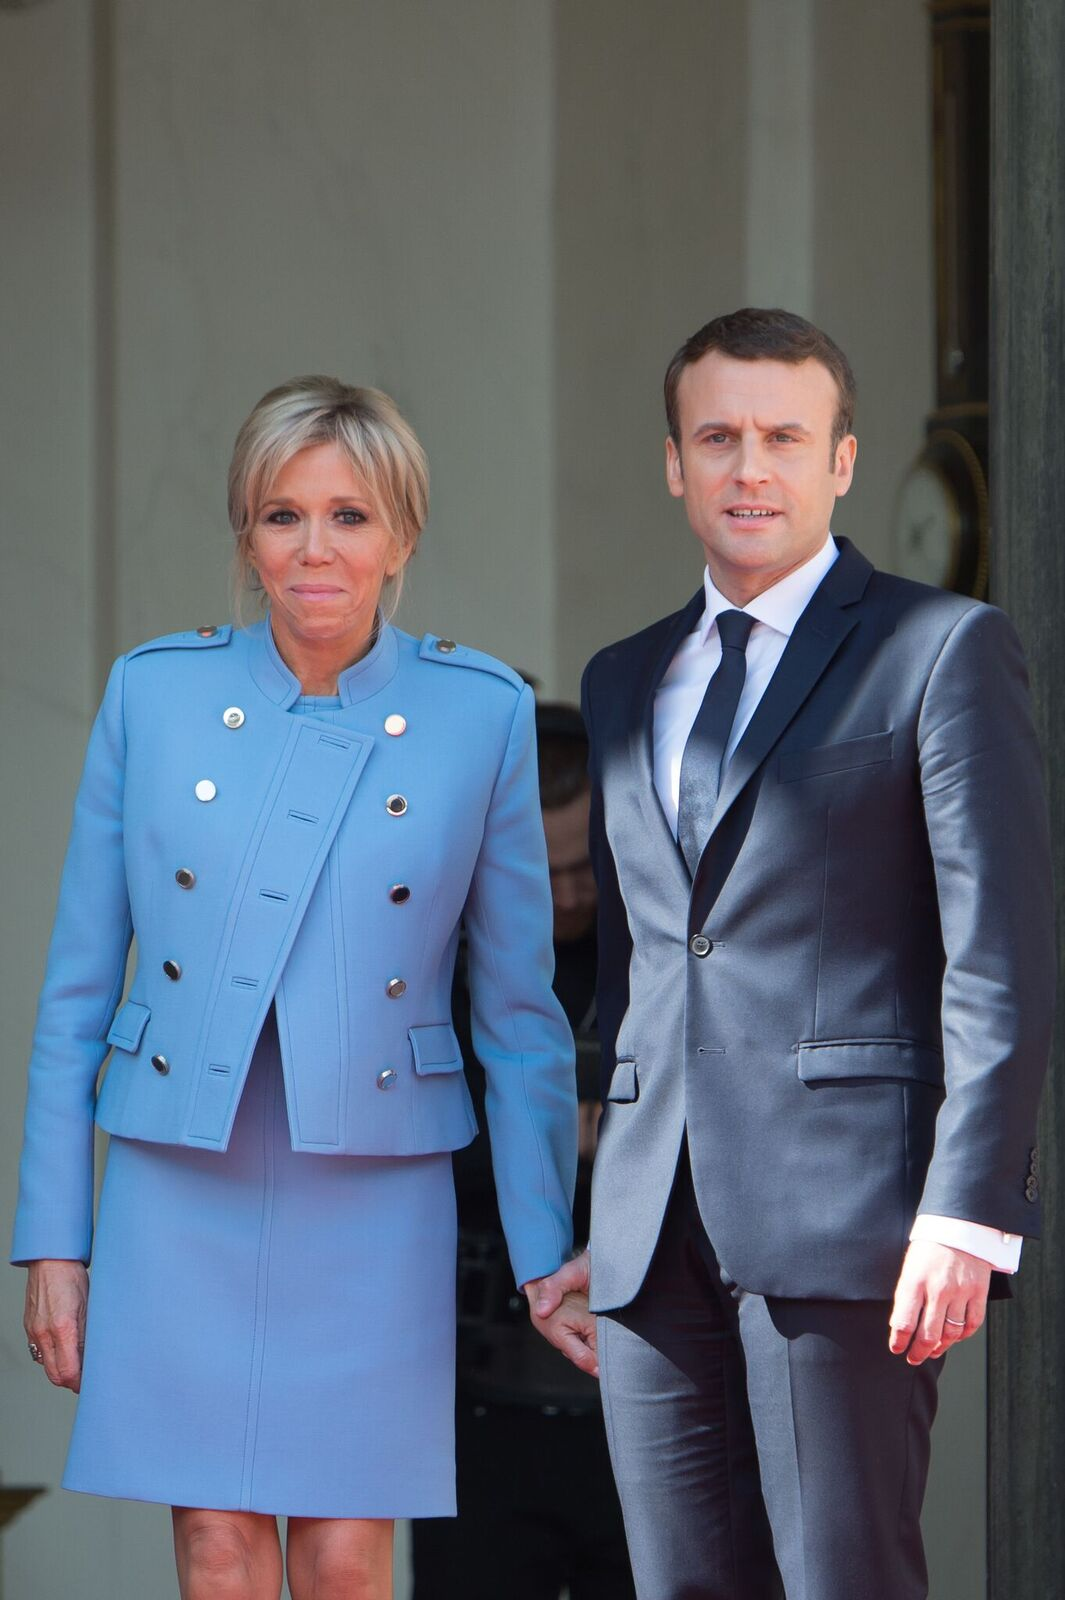 Brigitte et Emmanuel Macron lors de la cérémonie d'investiture à l'Elysée | Photo : Getty Images